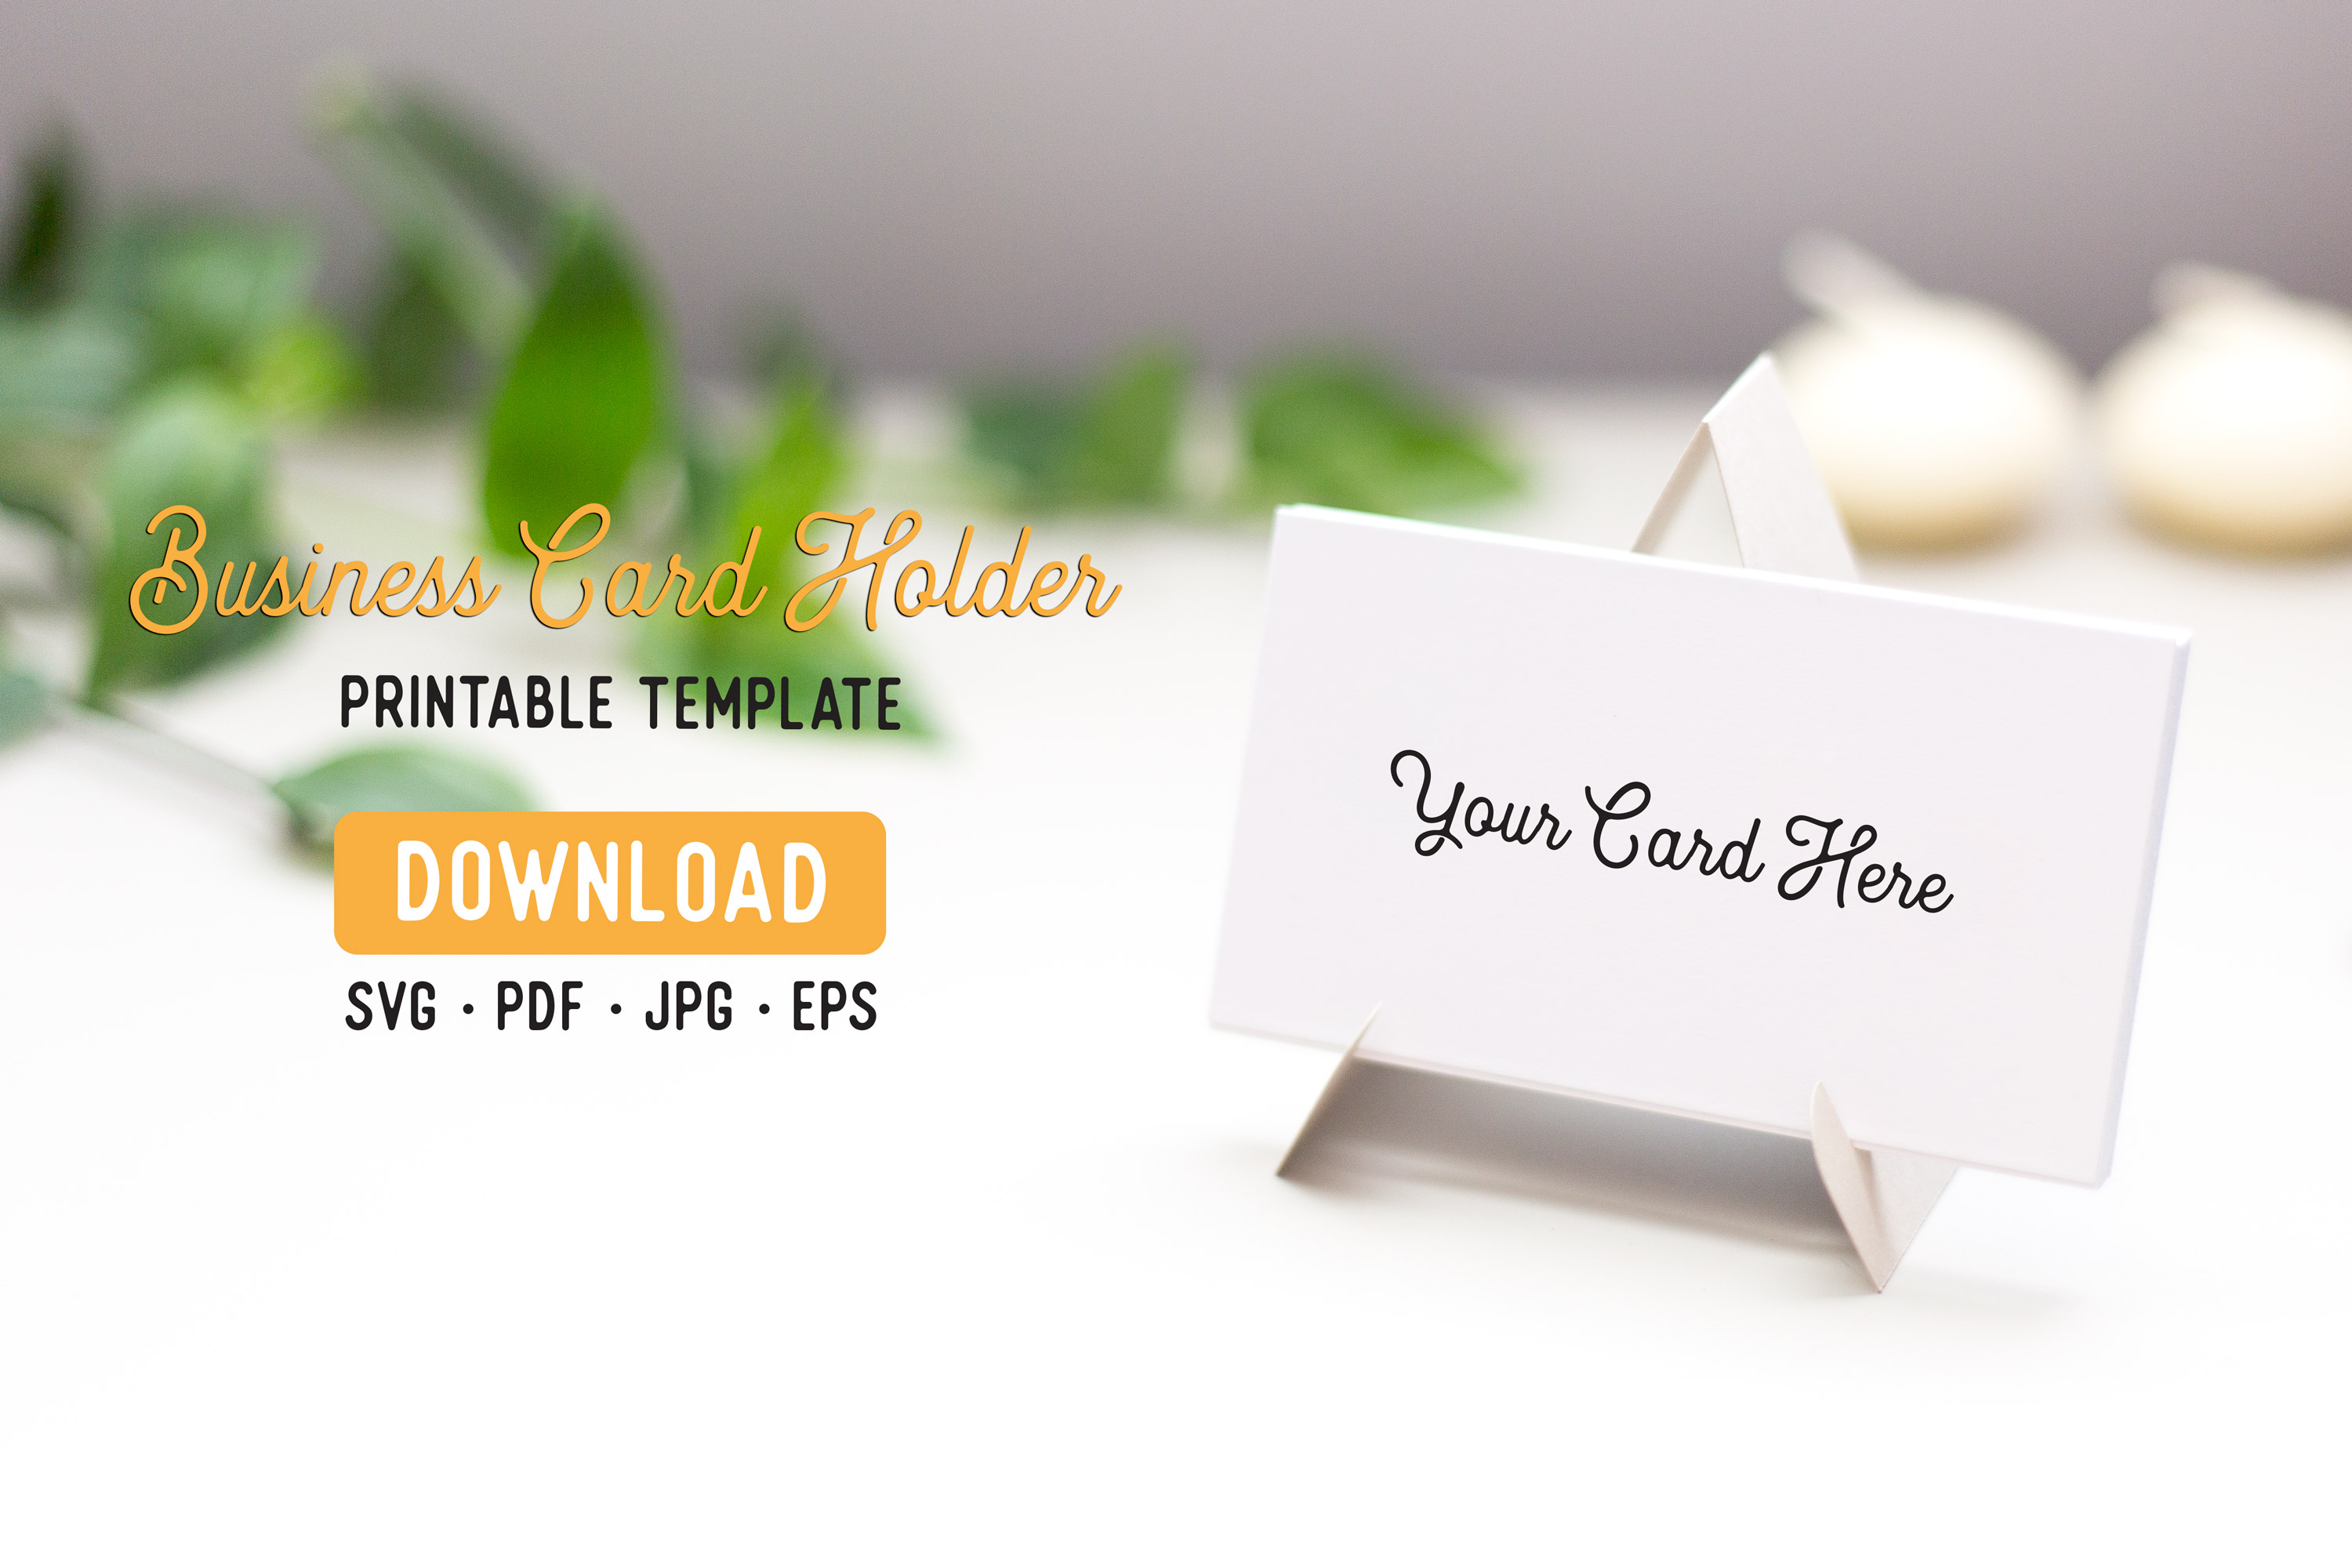 Business Card Stand Template Graphic by The Gradient Fox With Card Stand Template